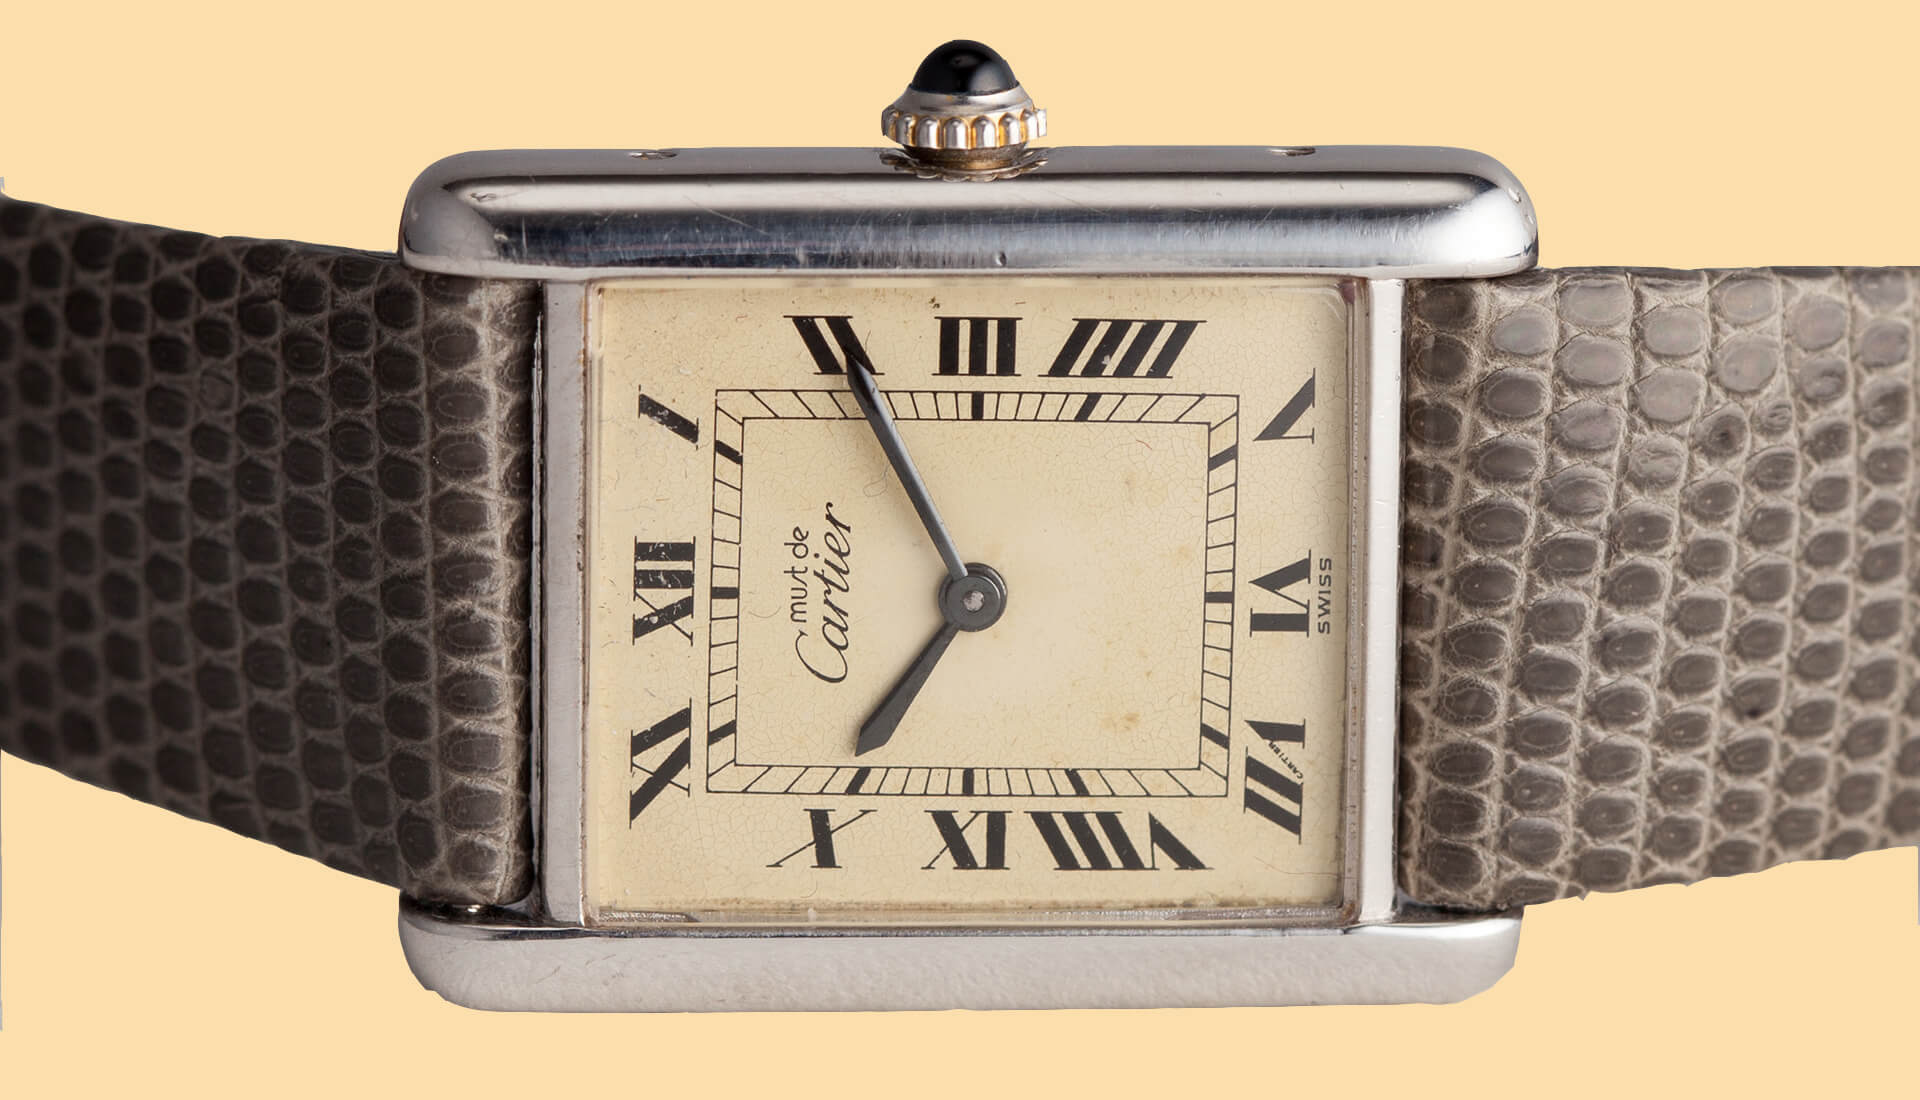 In The Metal: Rolex Oyster Perpetual, Must de Cartier Tank, & a Vintage Alarm